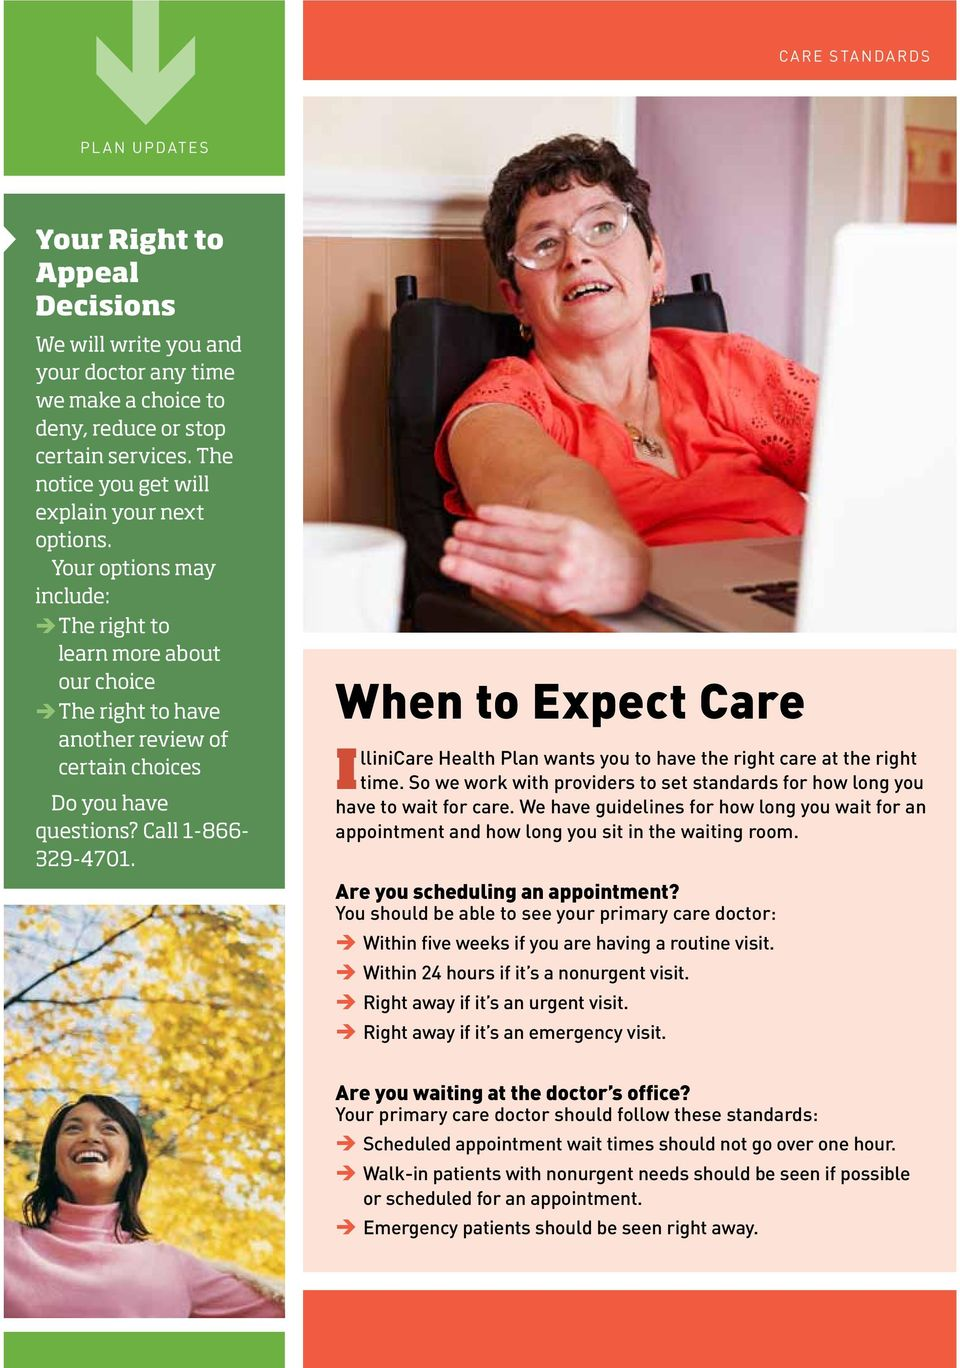 Call 1-866- 329-4701. When to Expect Care IlliniCare Health Plan wants you to have the right care at the right time. So we work with providers to set standards for how long you have to wait for care.